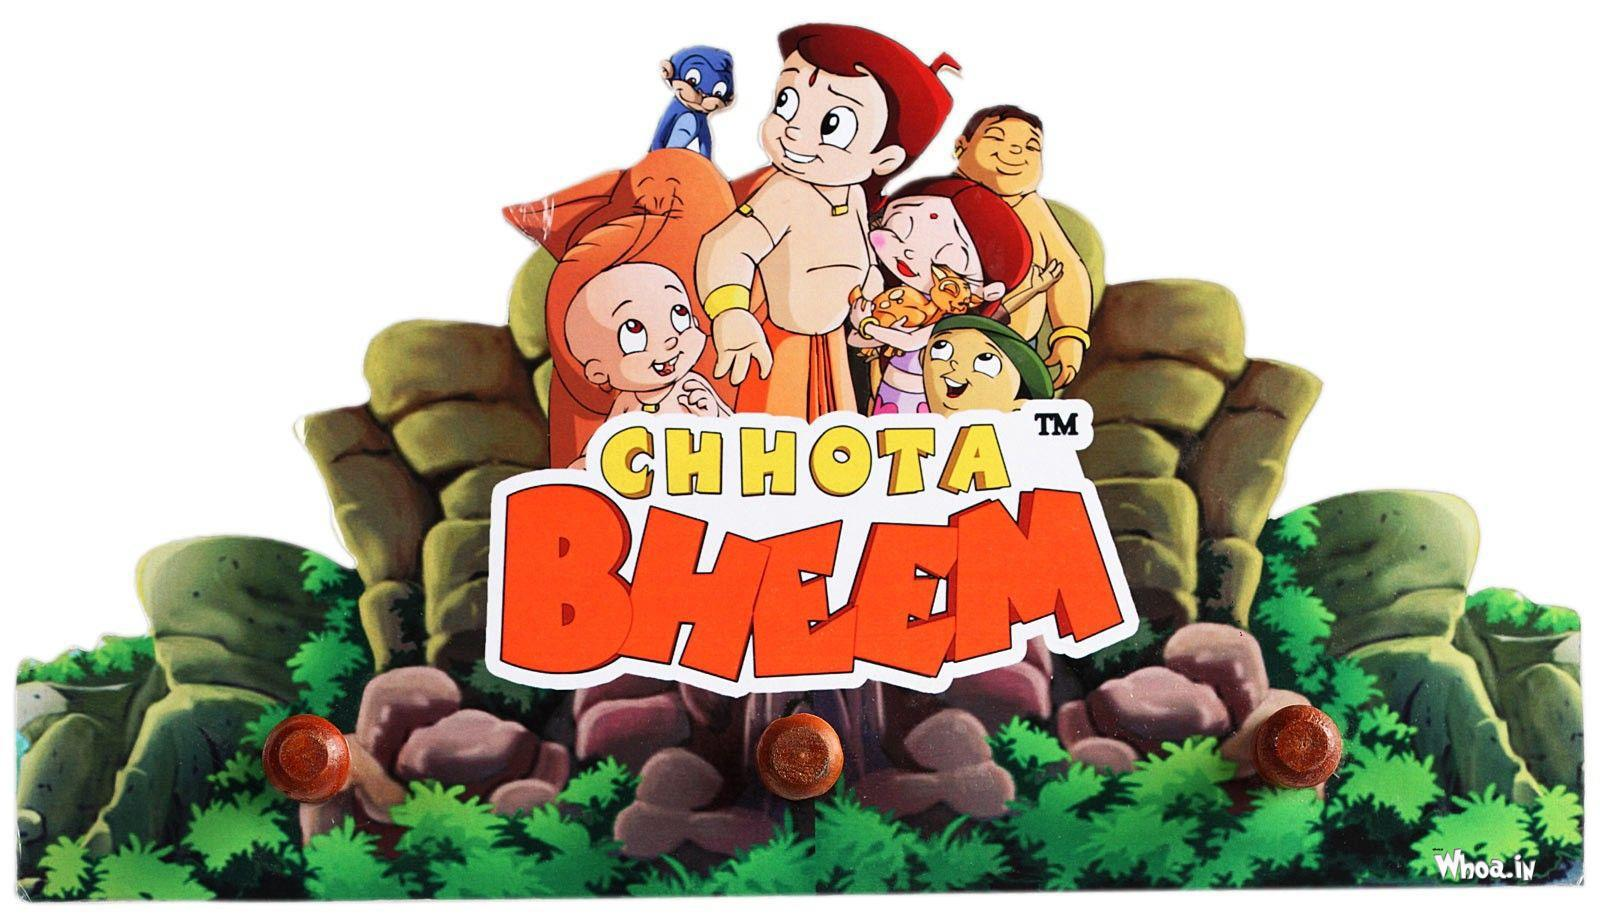 Chhota Bheem And Friends HD Wallpapers Free Download